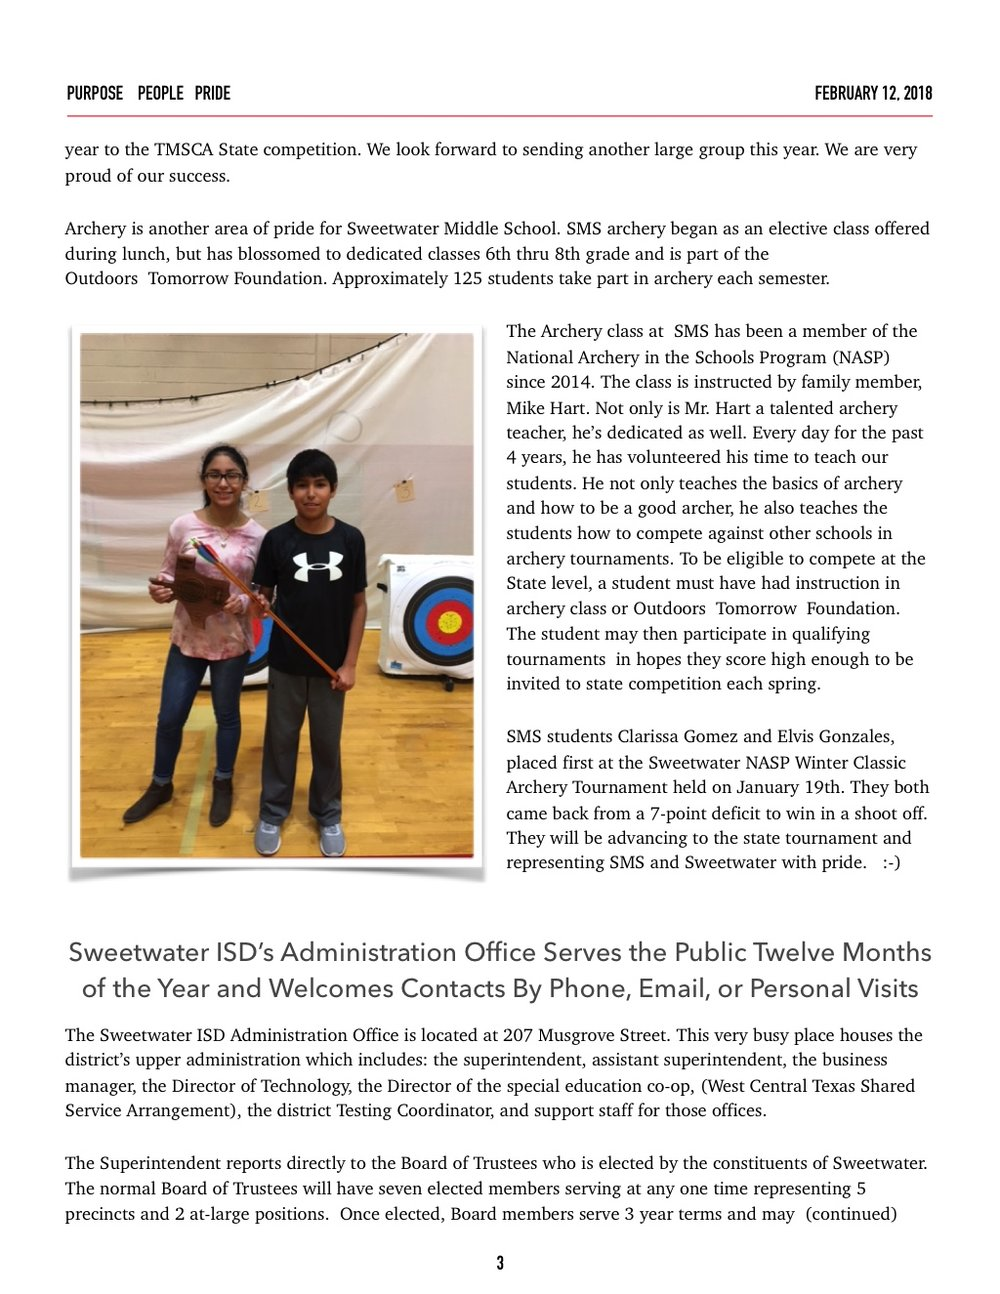 Sweetwater ISD Newsletter February 2018-3.jpg